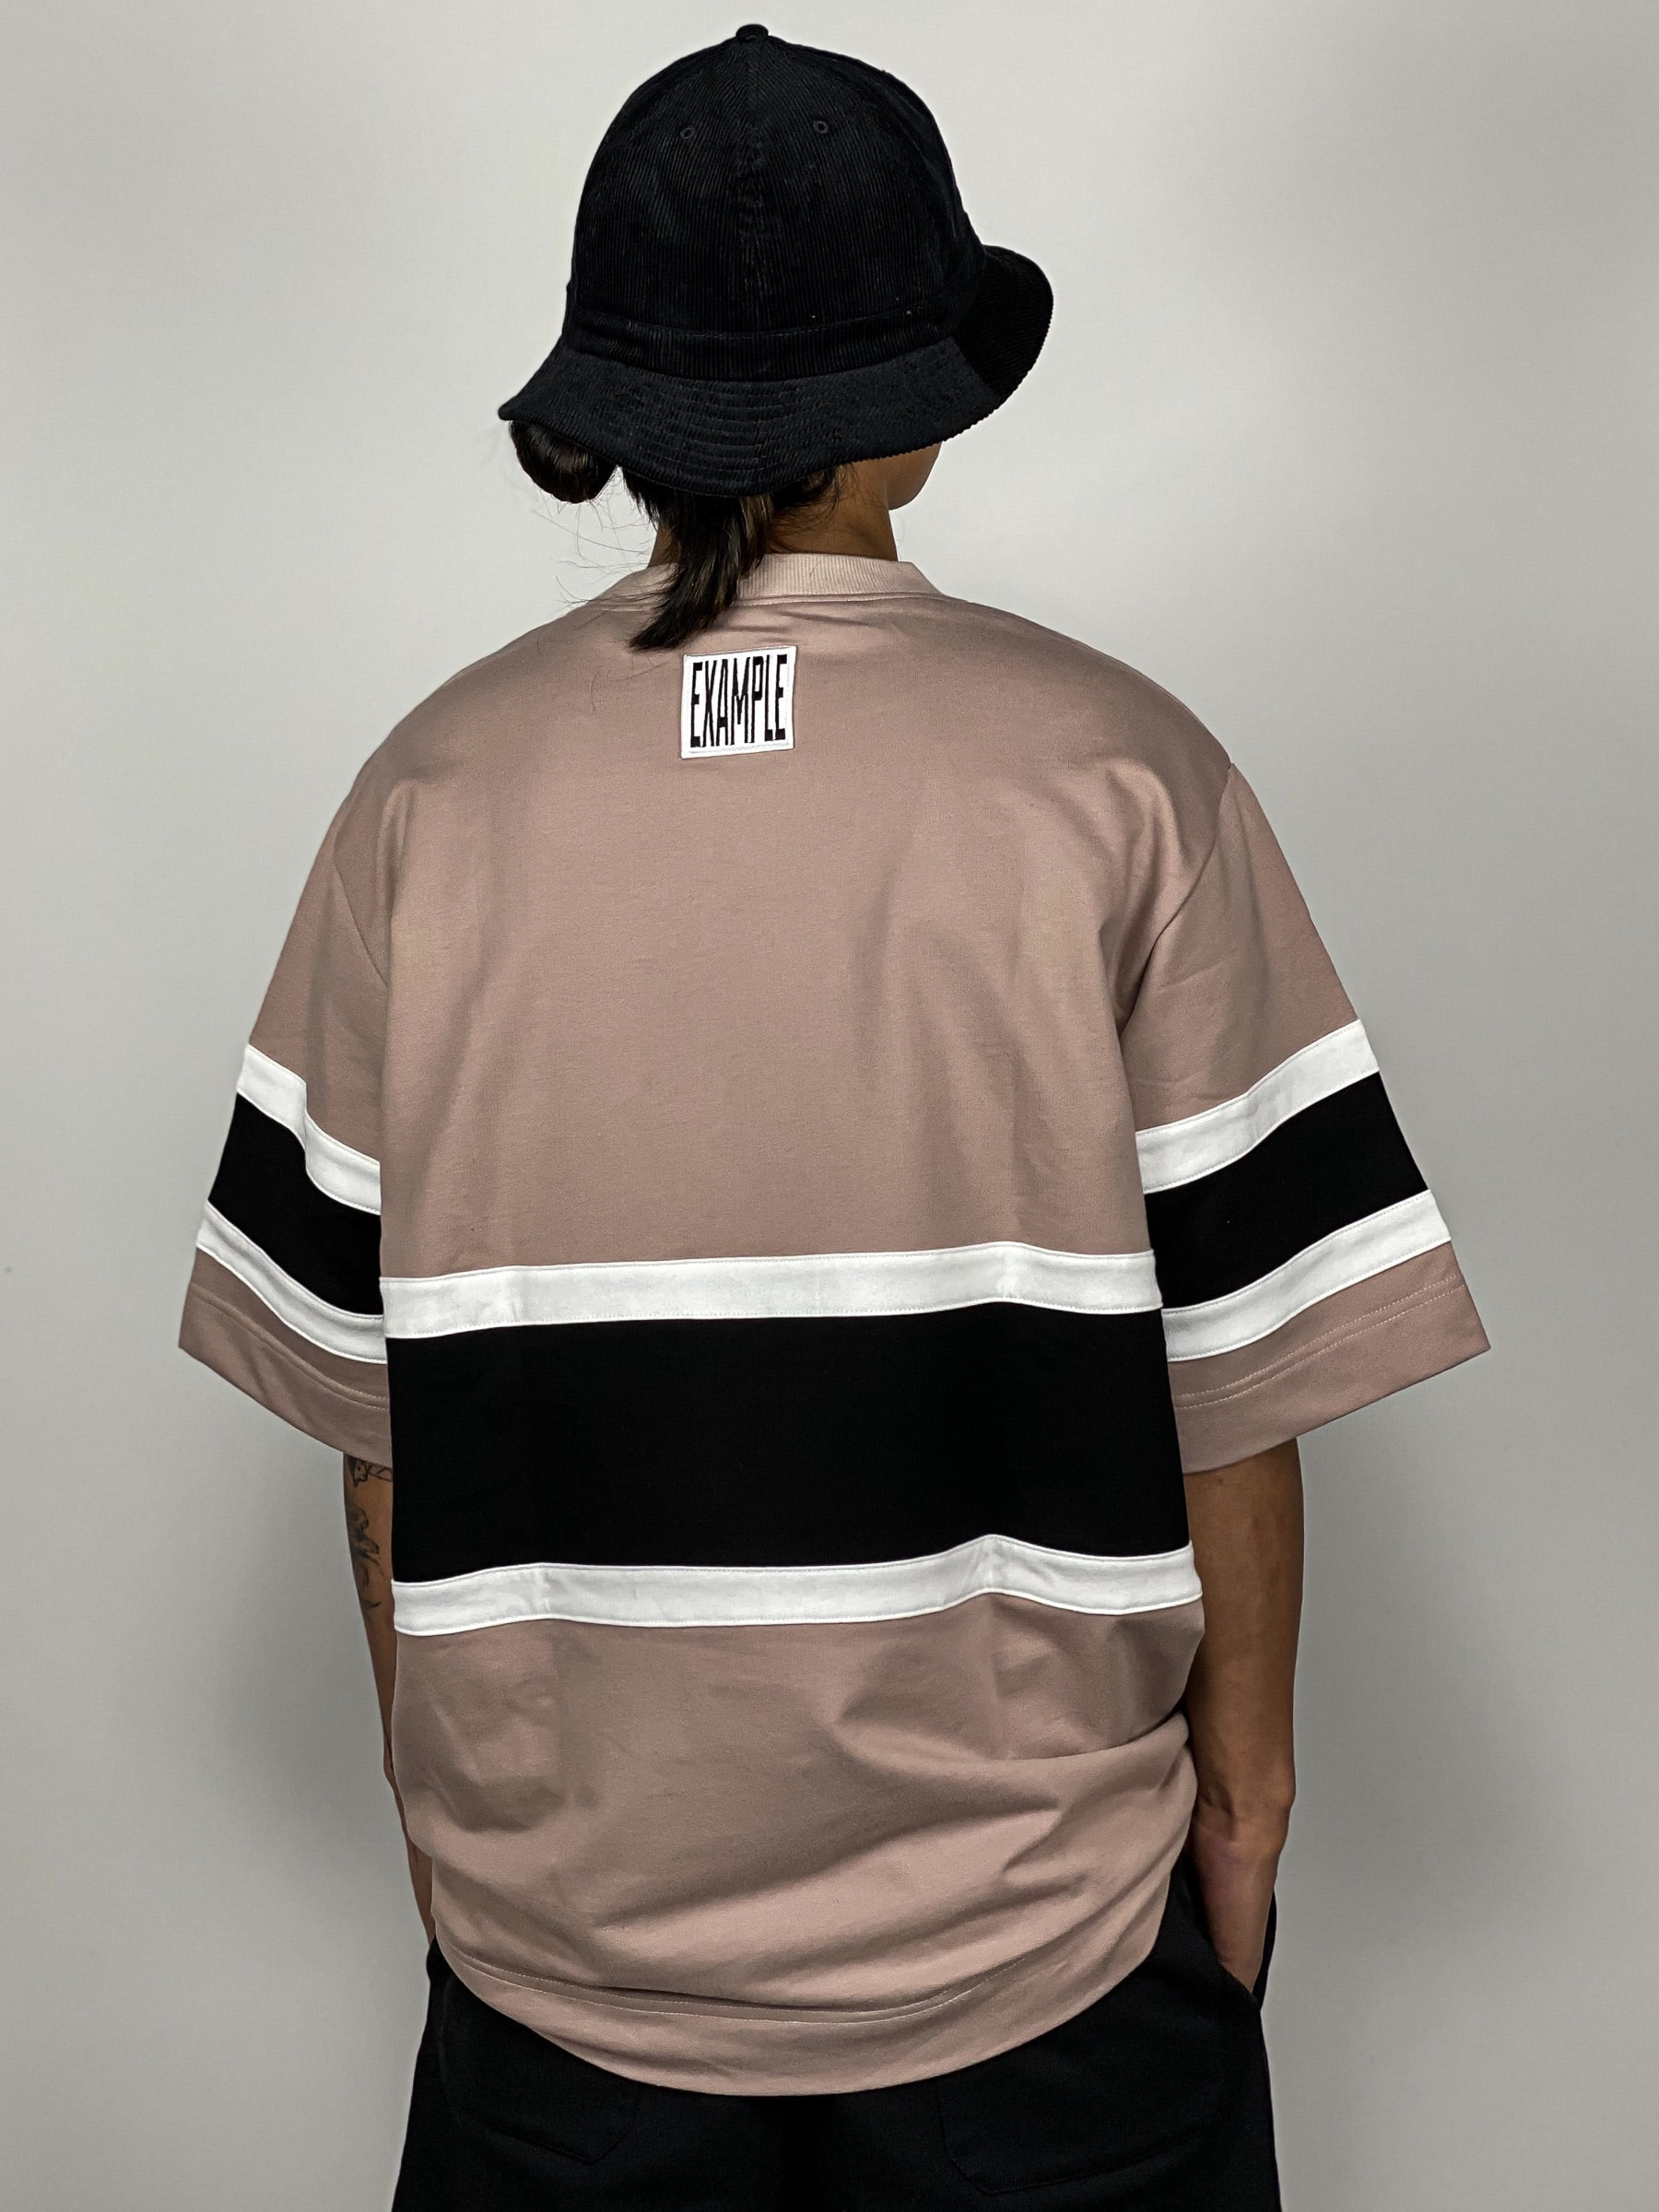 example-20ss-lookbook-launch-20200222